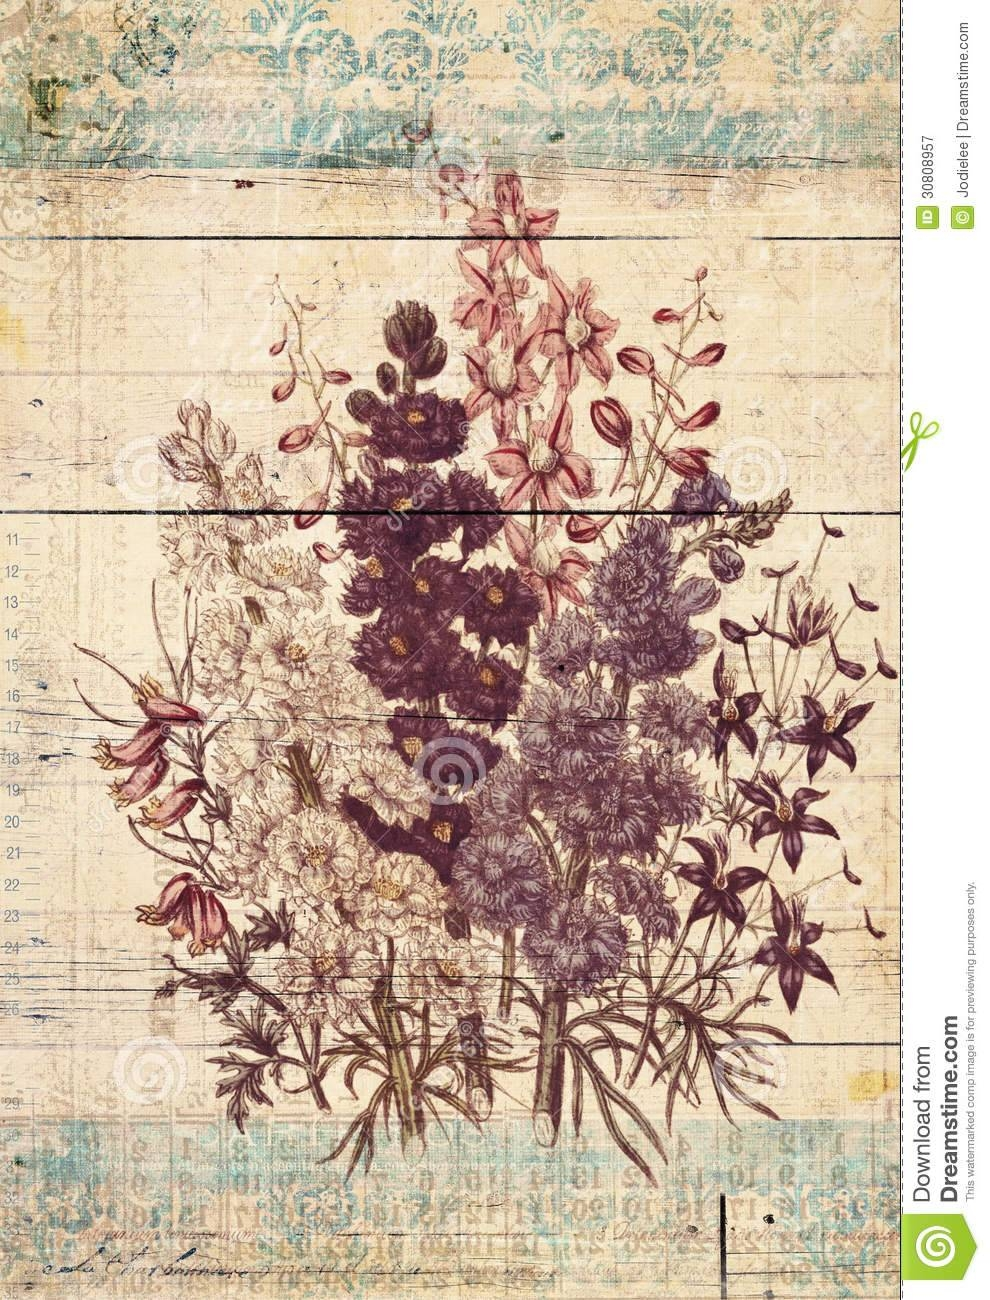 Flowers Botanical Vintage Style Wall Art With Textured Background For Most Recently Released Vintage Style Wall Art (View 1 of 20)